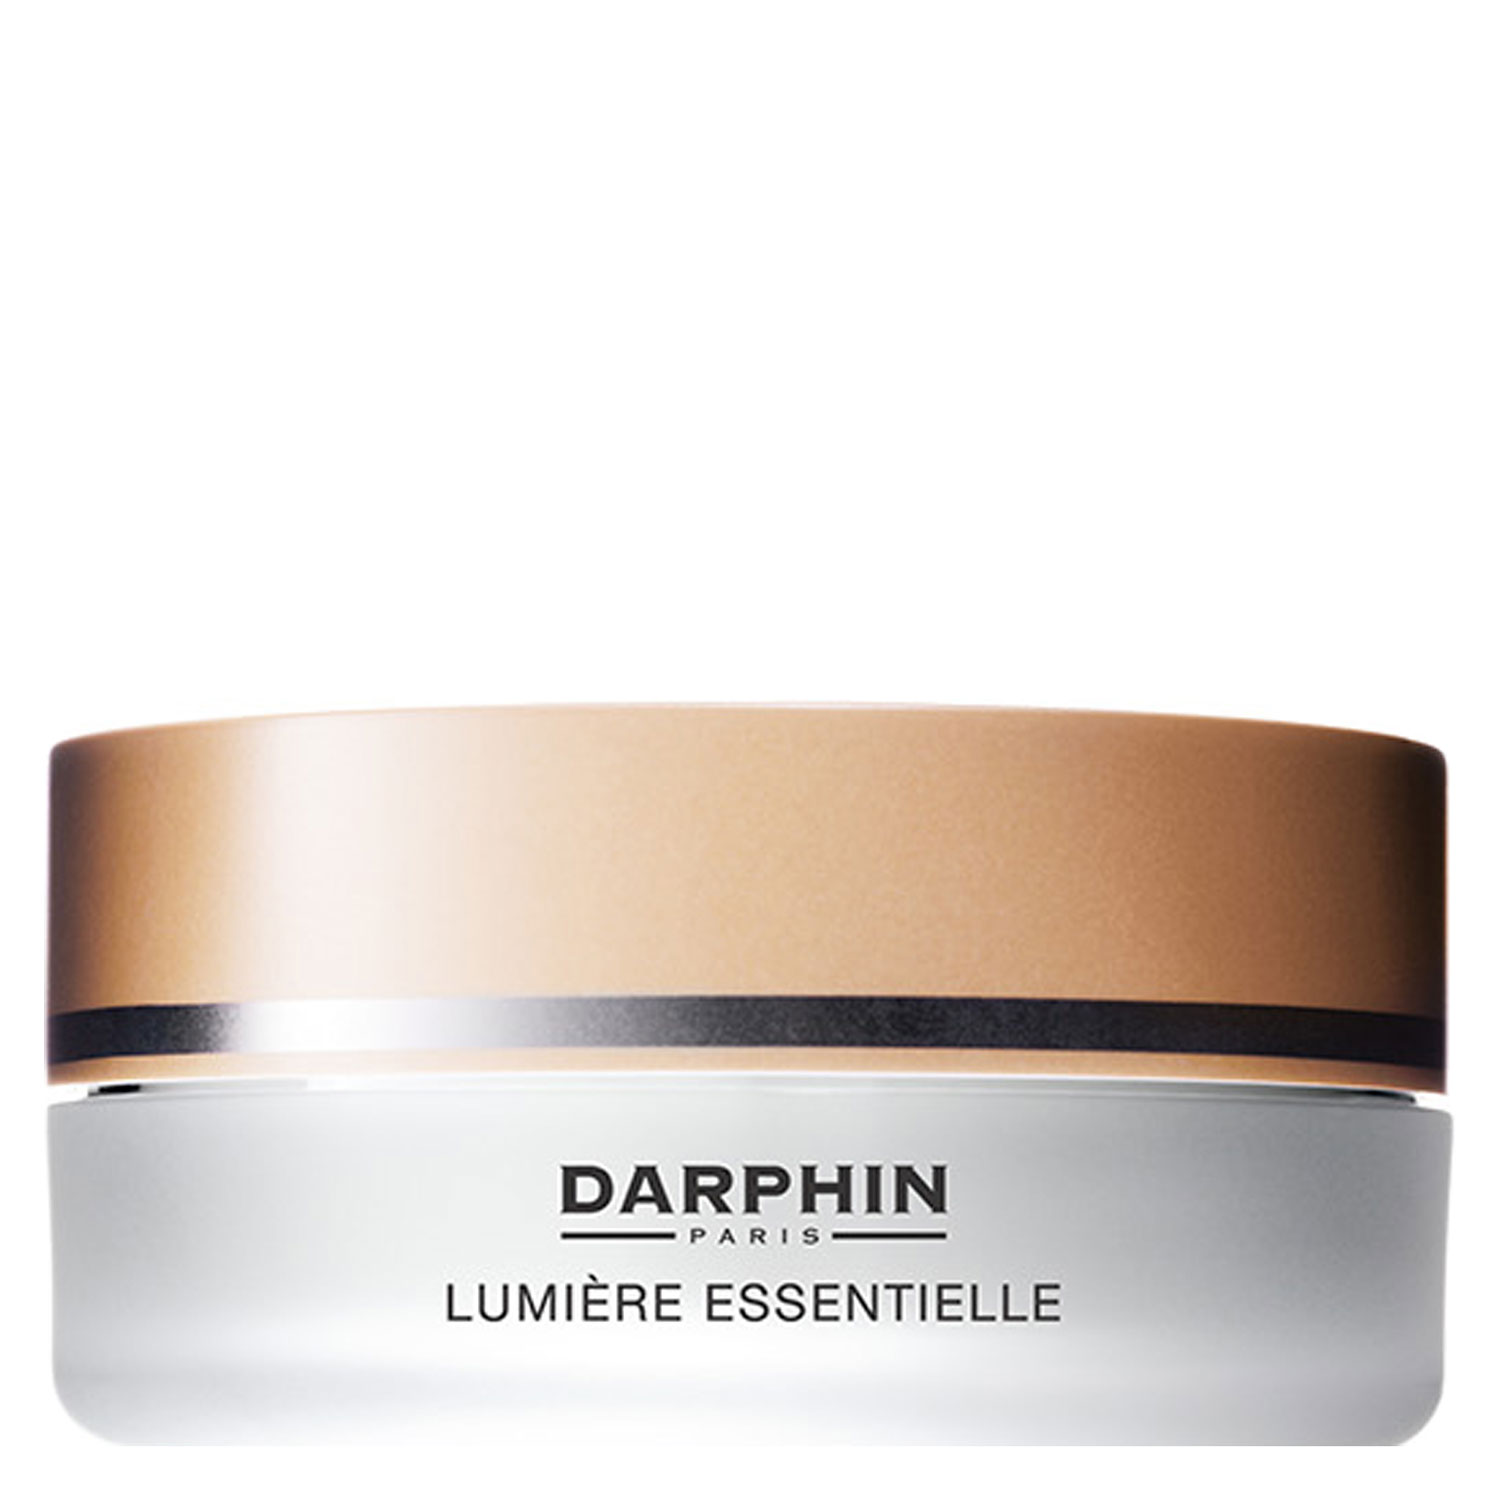 LUMIÈRE ESSENTIELLE - Instant Purifying and Illuminating Mask